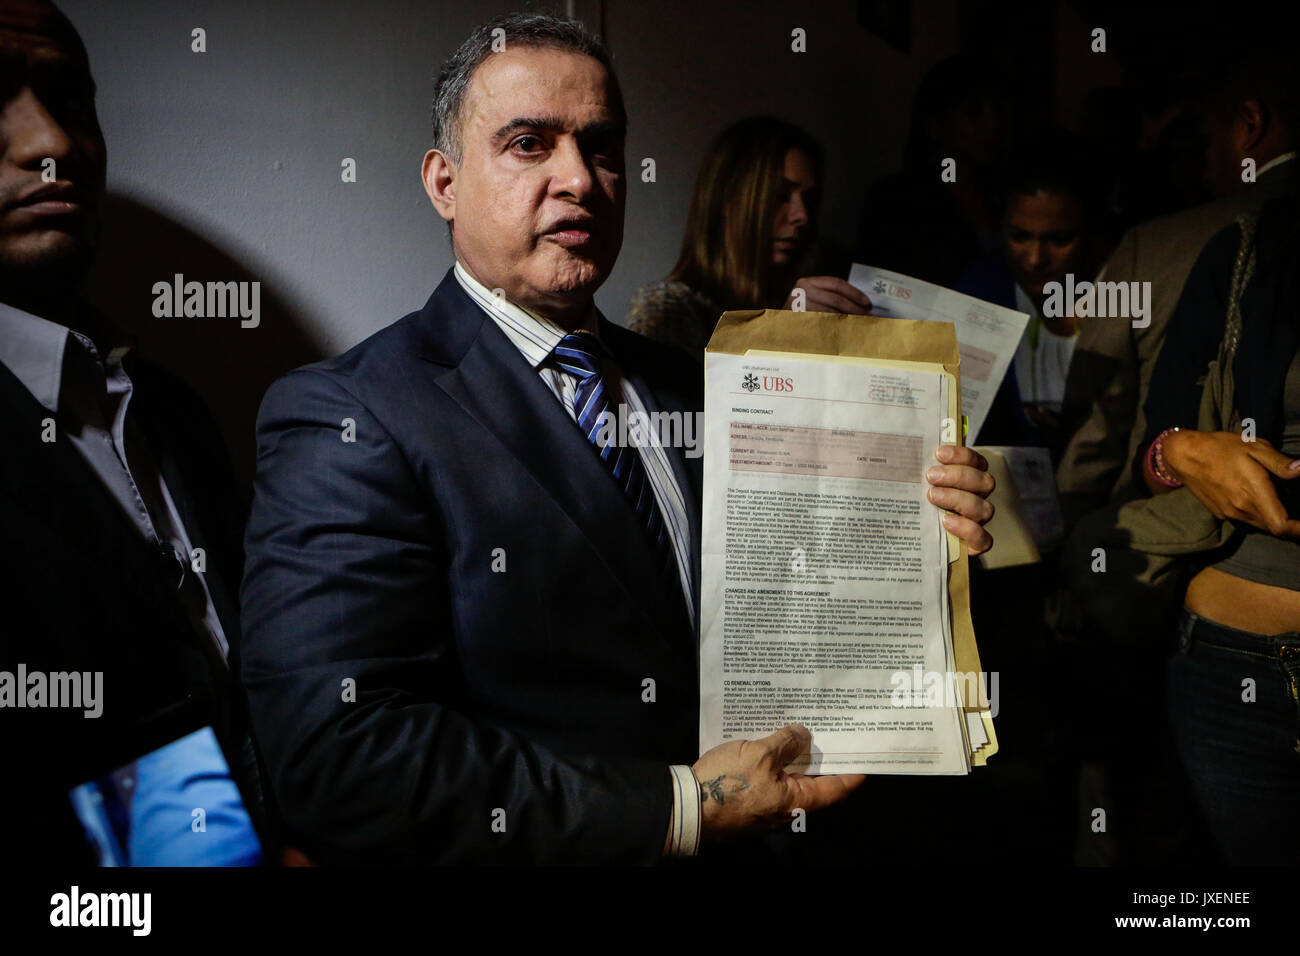 Caracas, Venezulea. 16th Aug, 2017. Venezuelan Attorney General Tareck William Saab shows evidence of bank accounts in dollars opened in the Bahamas, allegedly linked to a extorsion network inside the Attorney's Office, in Caracas, Venezuela, 16 August 2017. Saab demanded the incarceration of deputy German Ferrer, husband of his predecessor Luisa Ortega, minutes after a group of officialist constituents demanded the clearance of his parliamentary immunity and arrest. Credit: EFE News Agency/Alamy Live News - Stock Image